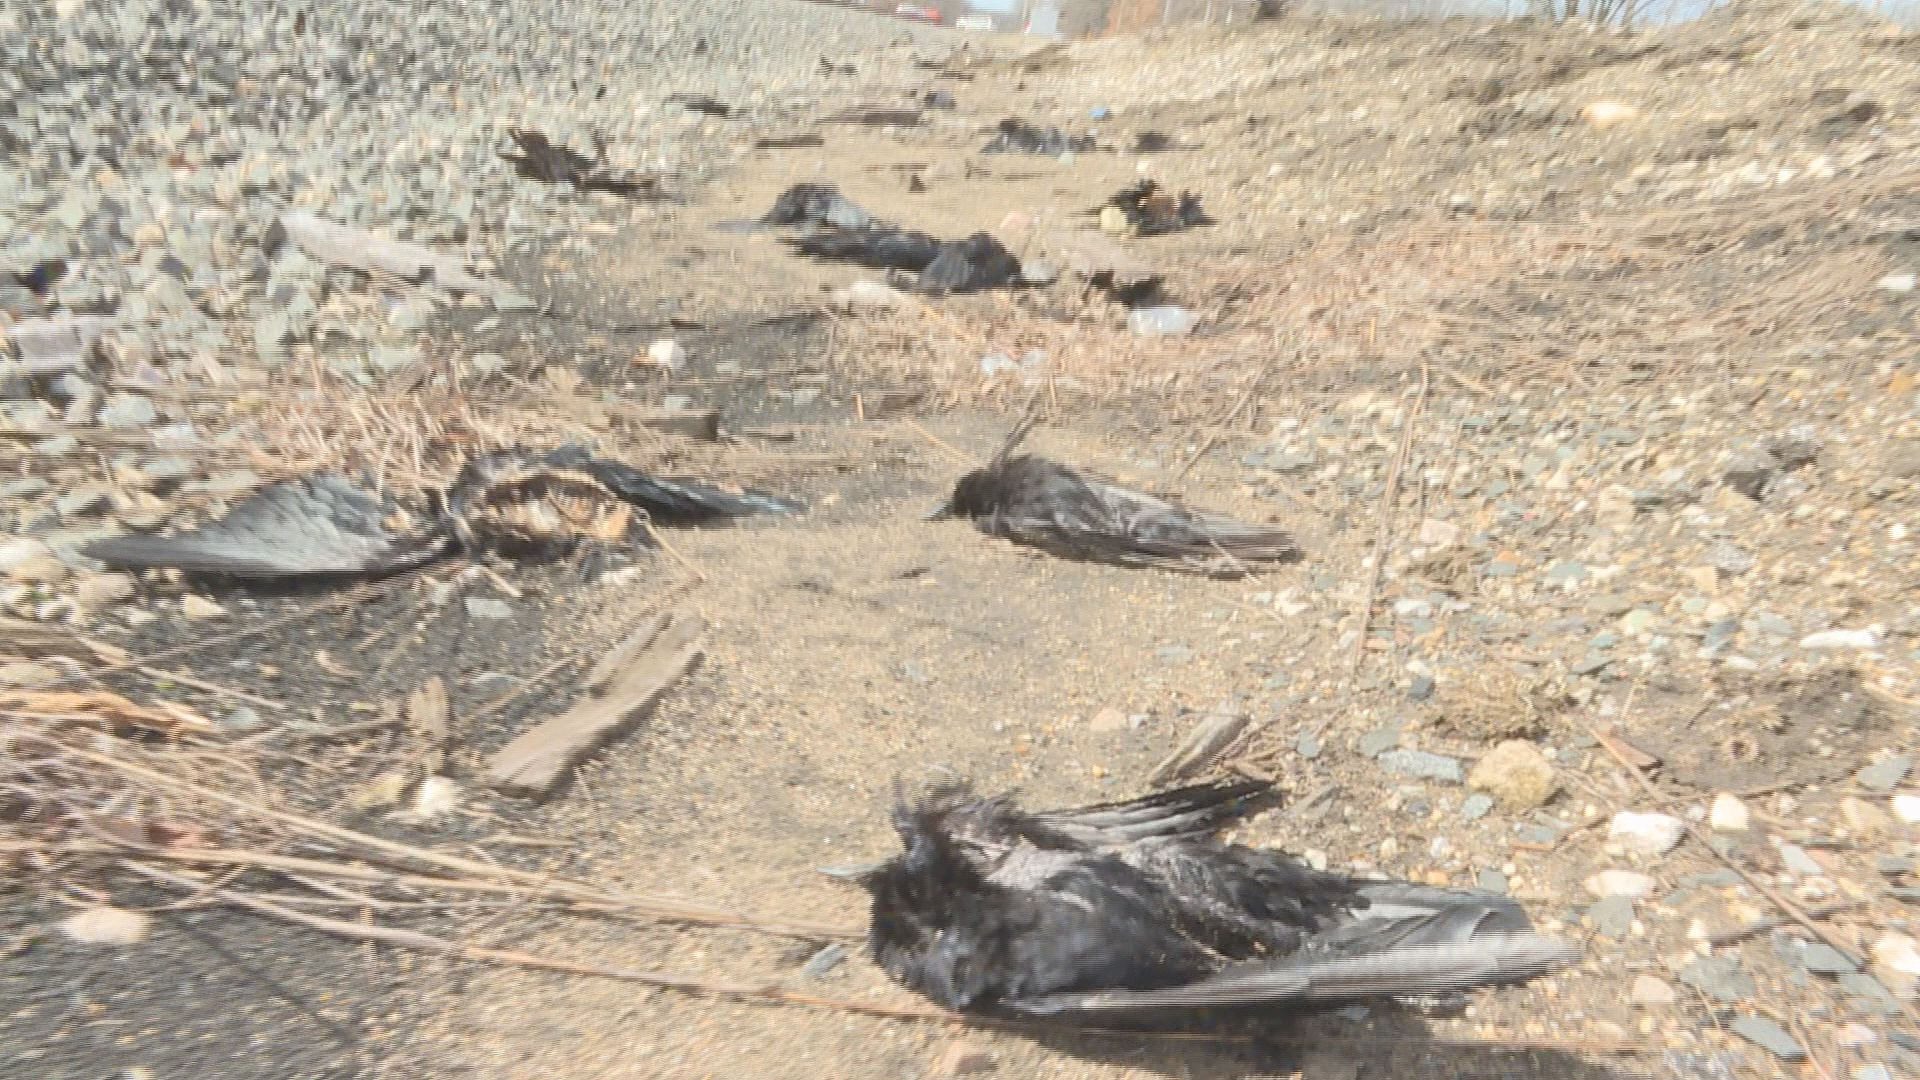 dead crow springfield michigan, hundreds dead crow springfield michigan, mystery as hundreds of dead crow springfield michigan, hundreds of dead crow found in springfield michigan